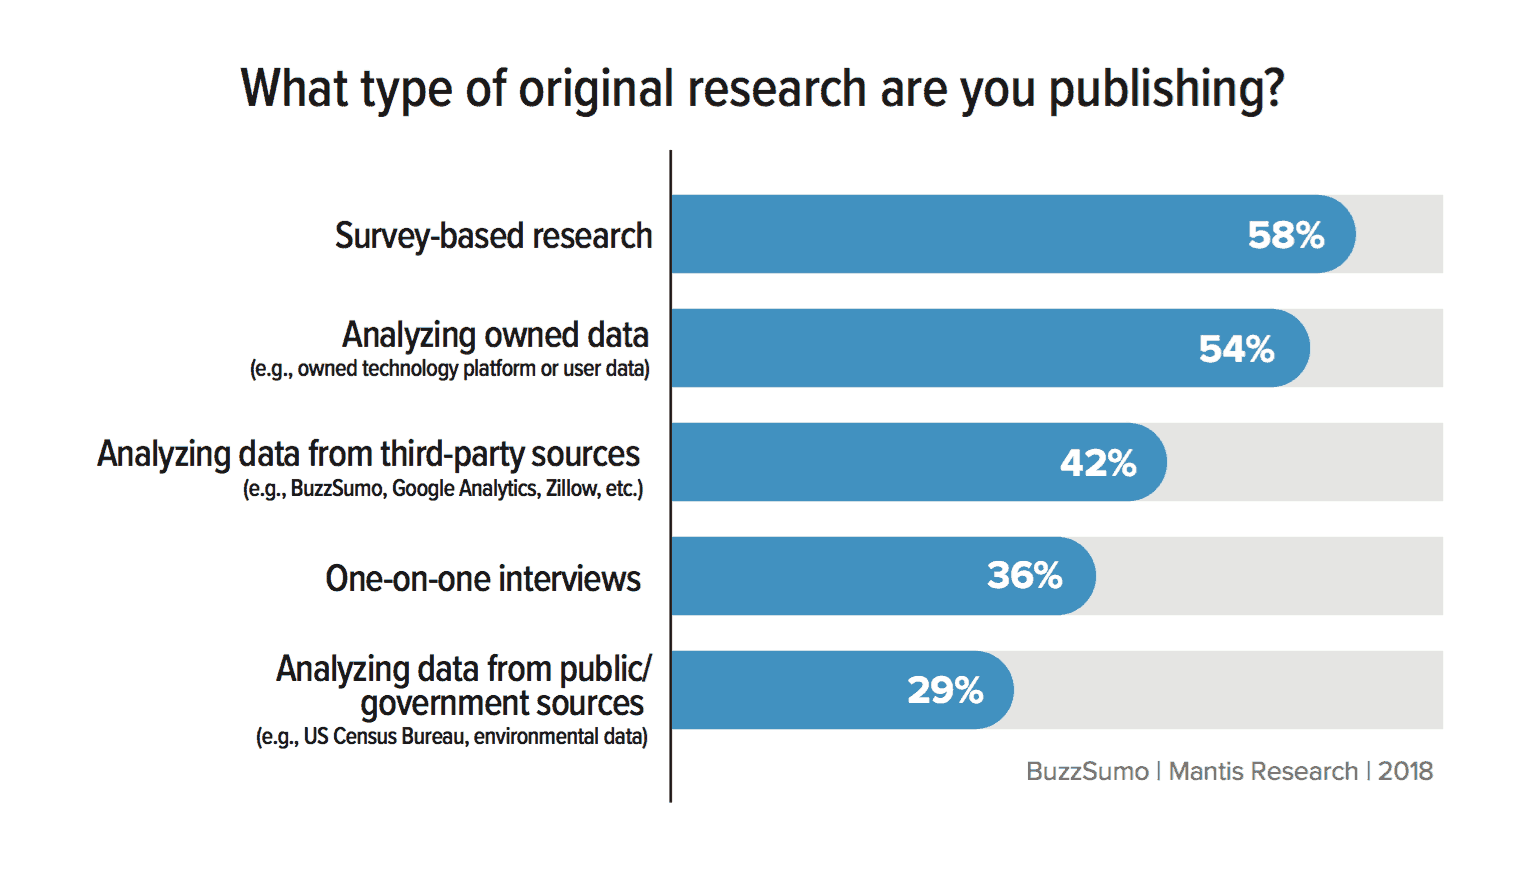 State of Original Research for Marketing in 2018 - Mantis